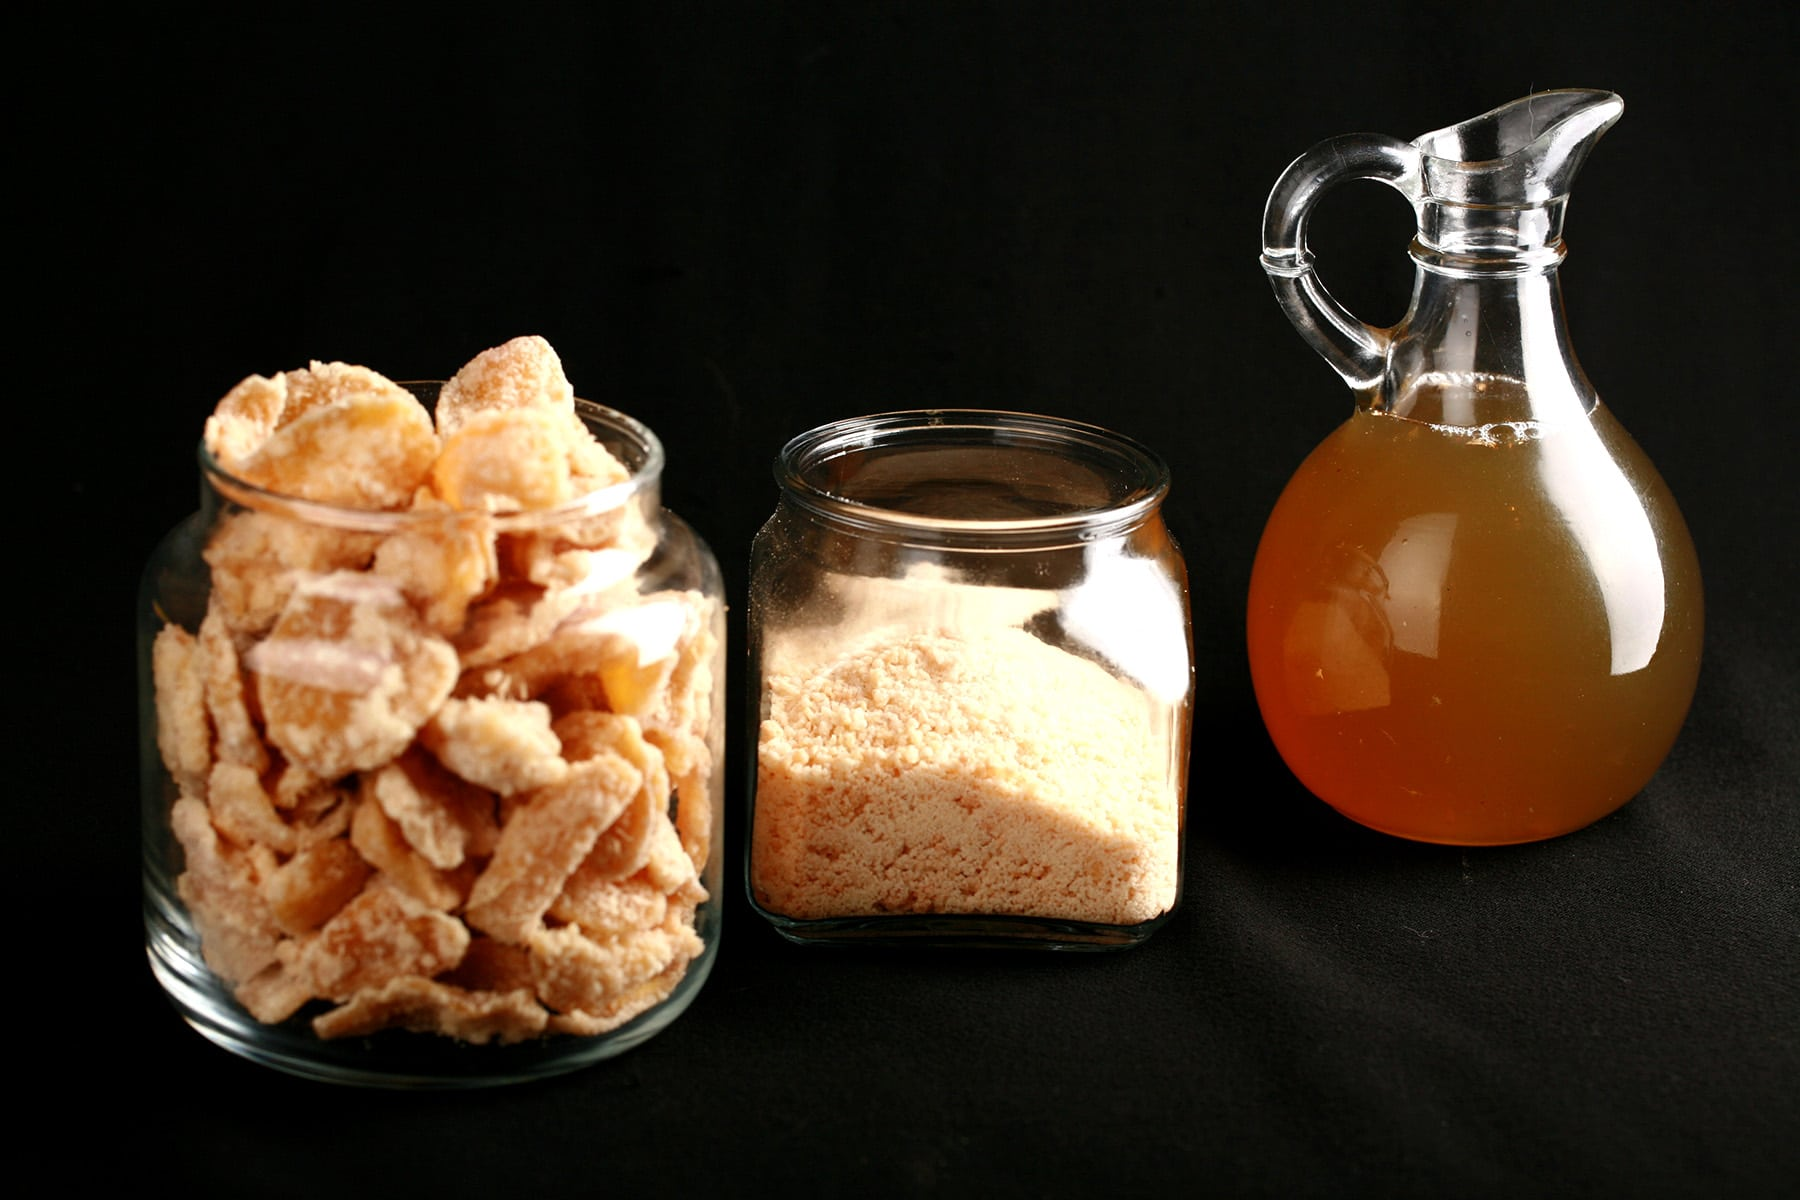 A glass jar of ginger sugar, a taller glass jar filled with candied ginger, and a small bottle of ginger syrup.